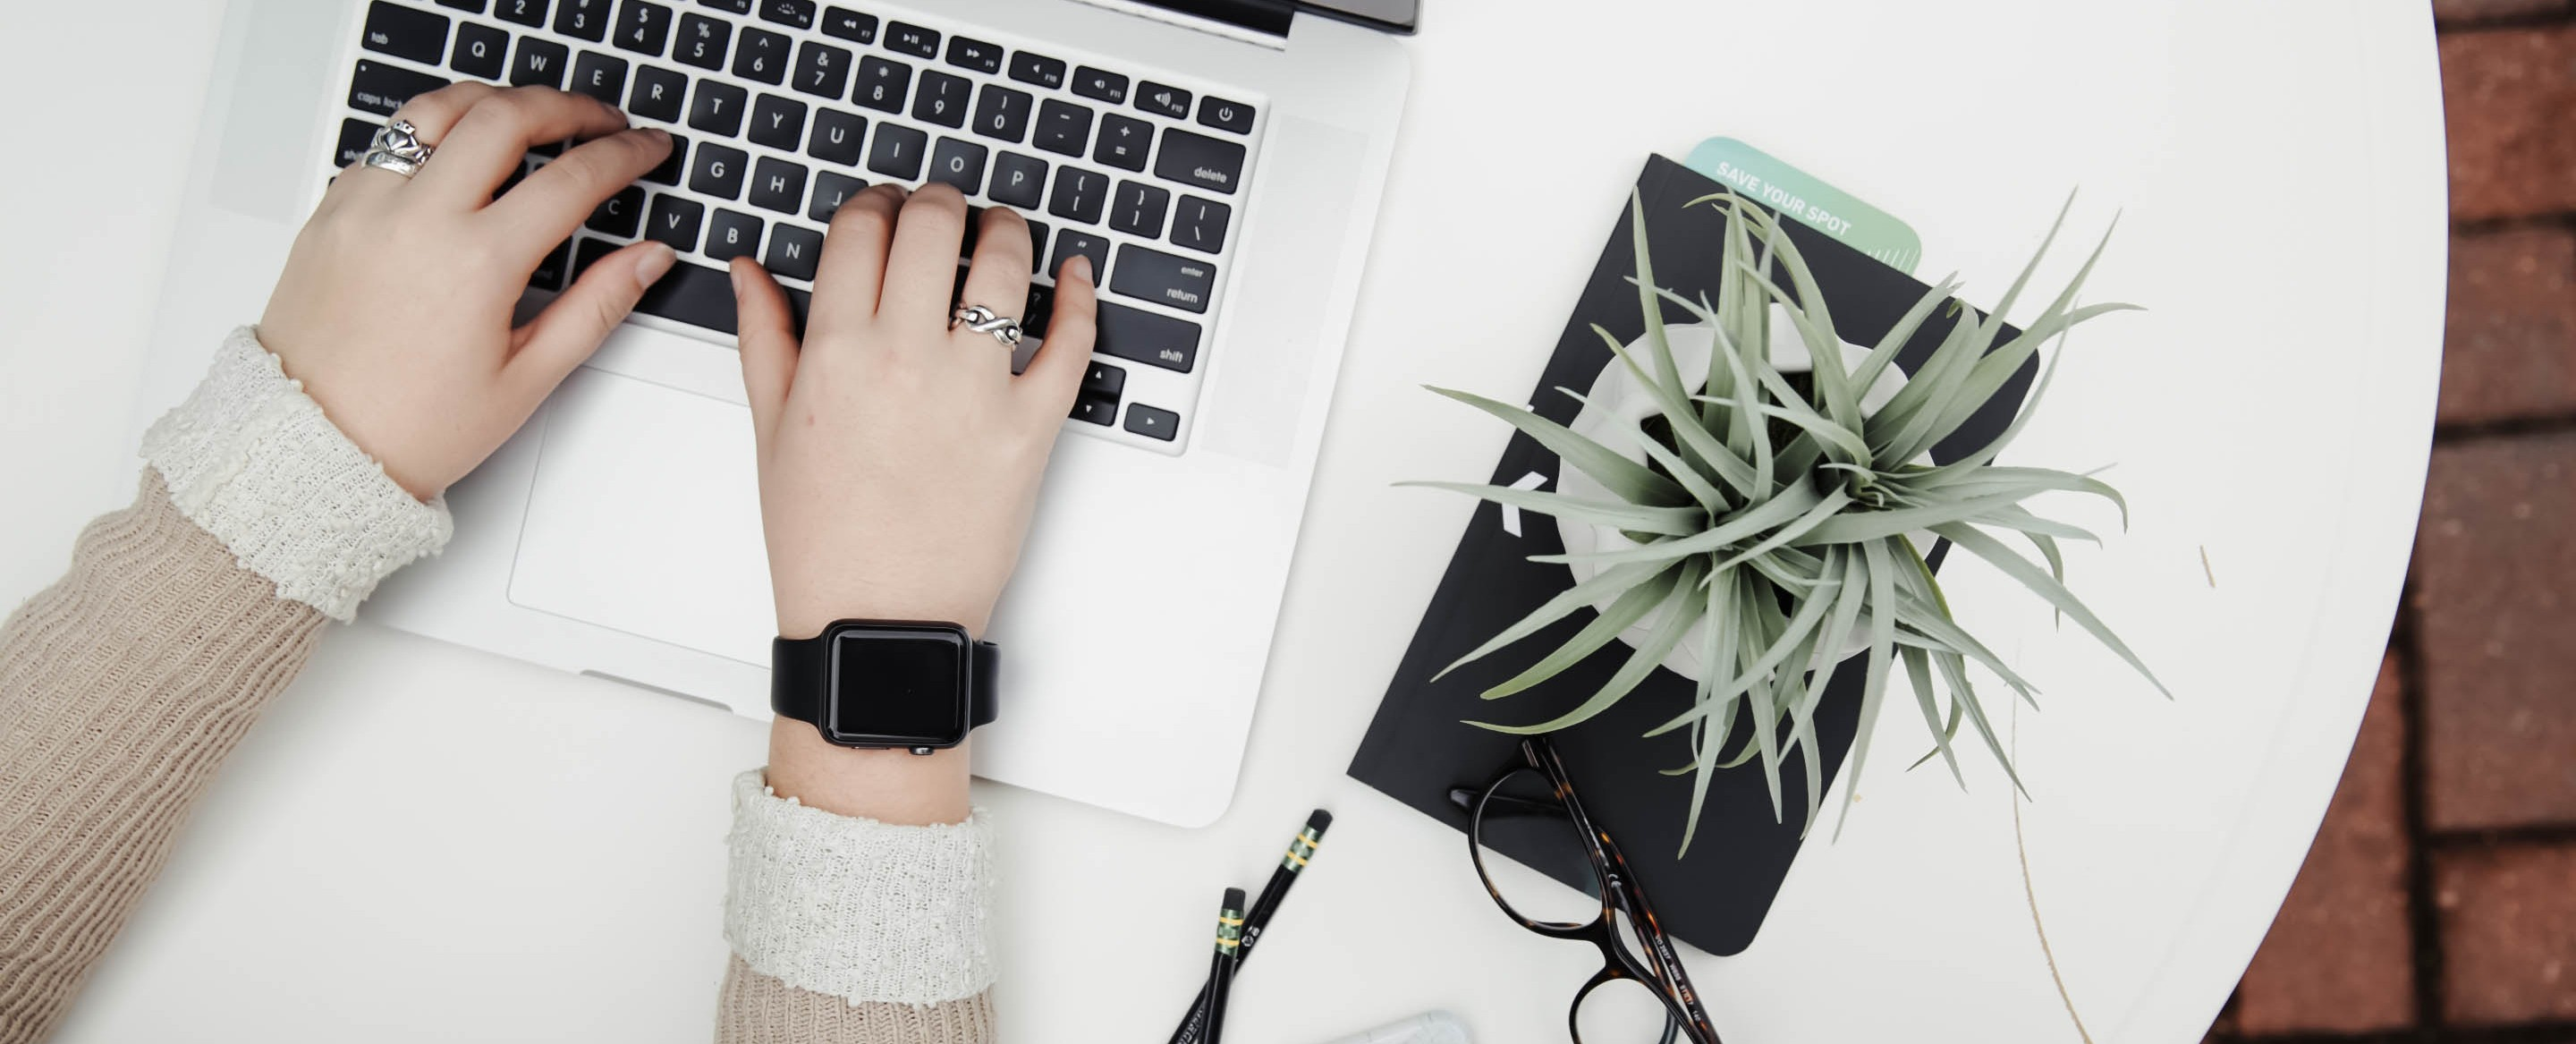 How A Social Media Manager Gets Through Any Day Like A Pro